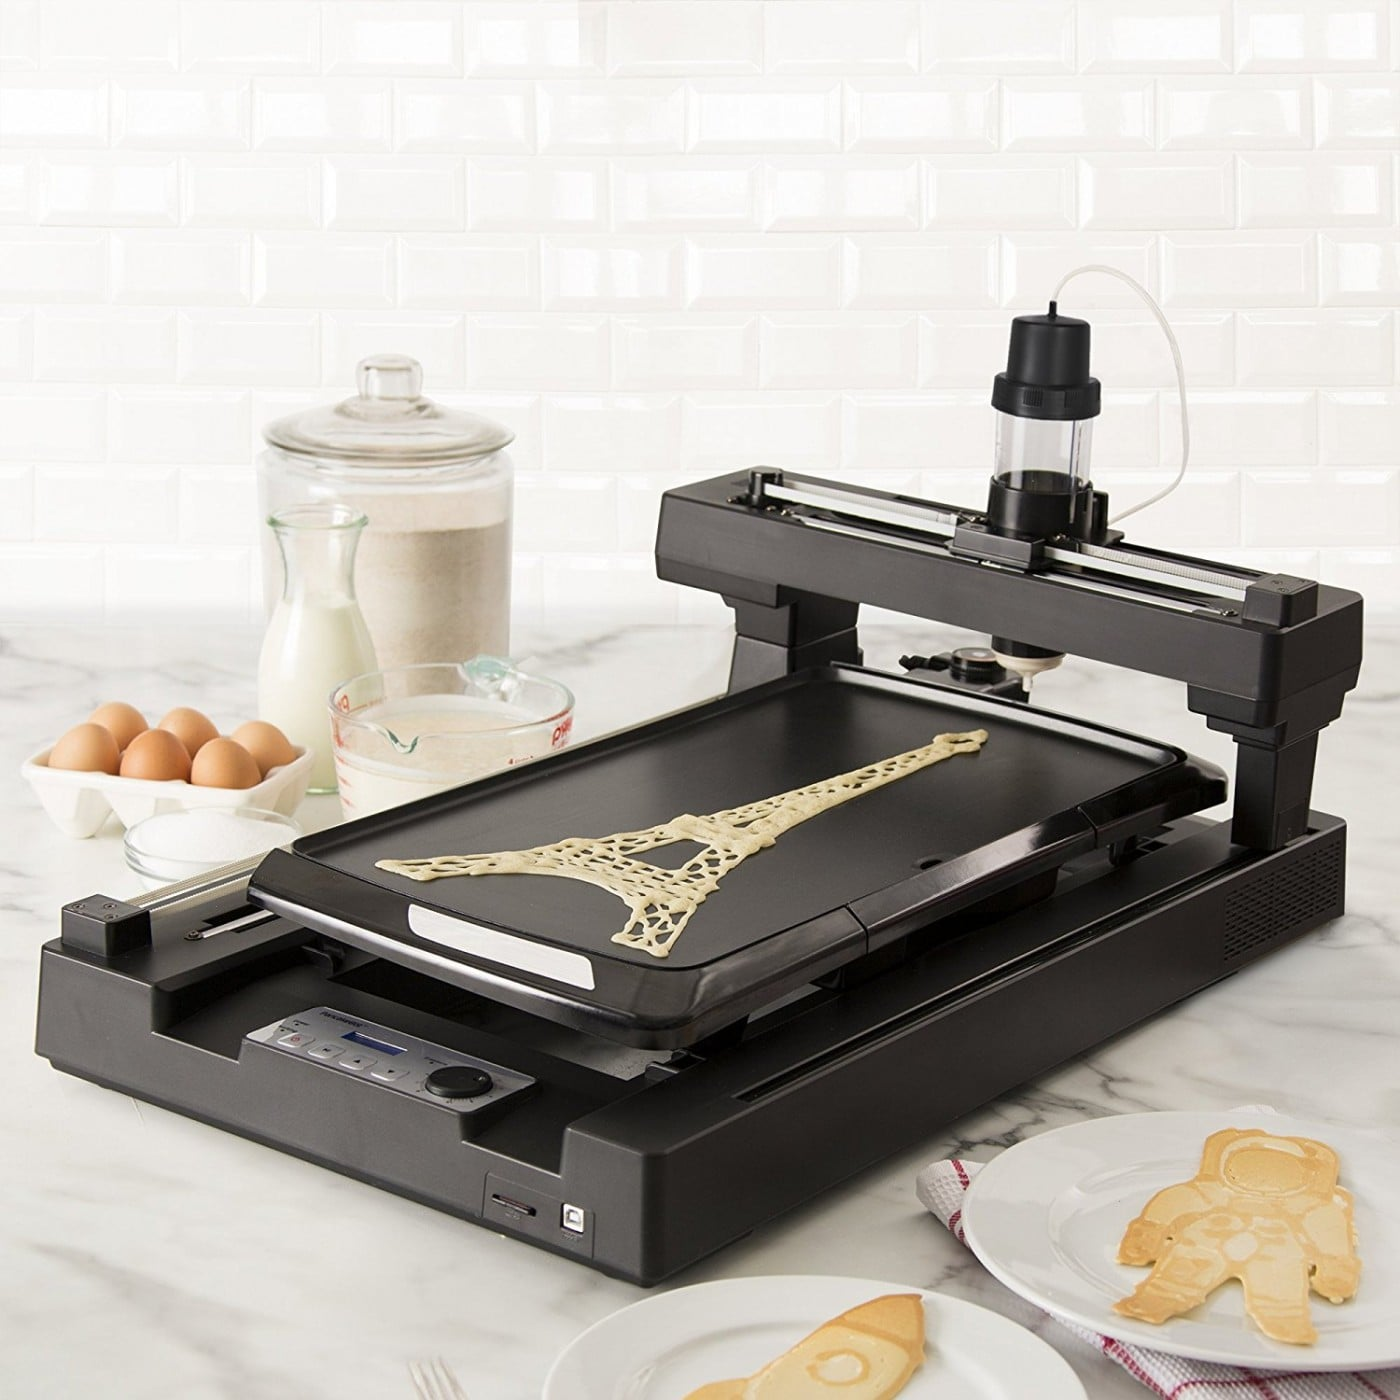 Photo of Culinary Technology Summit: The perfect pancake printer is sold online